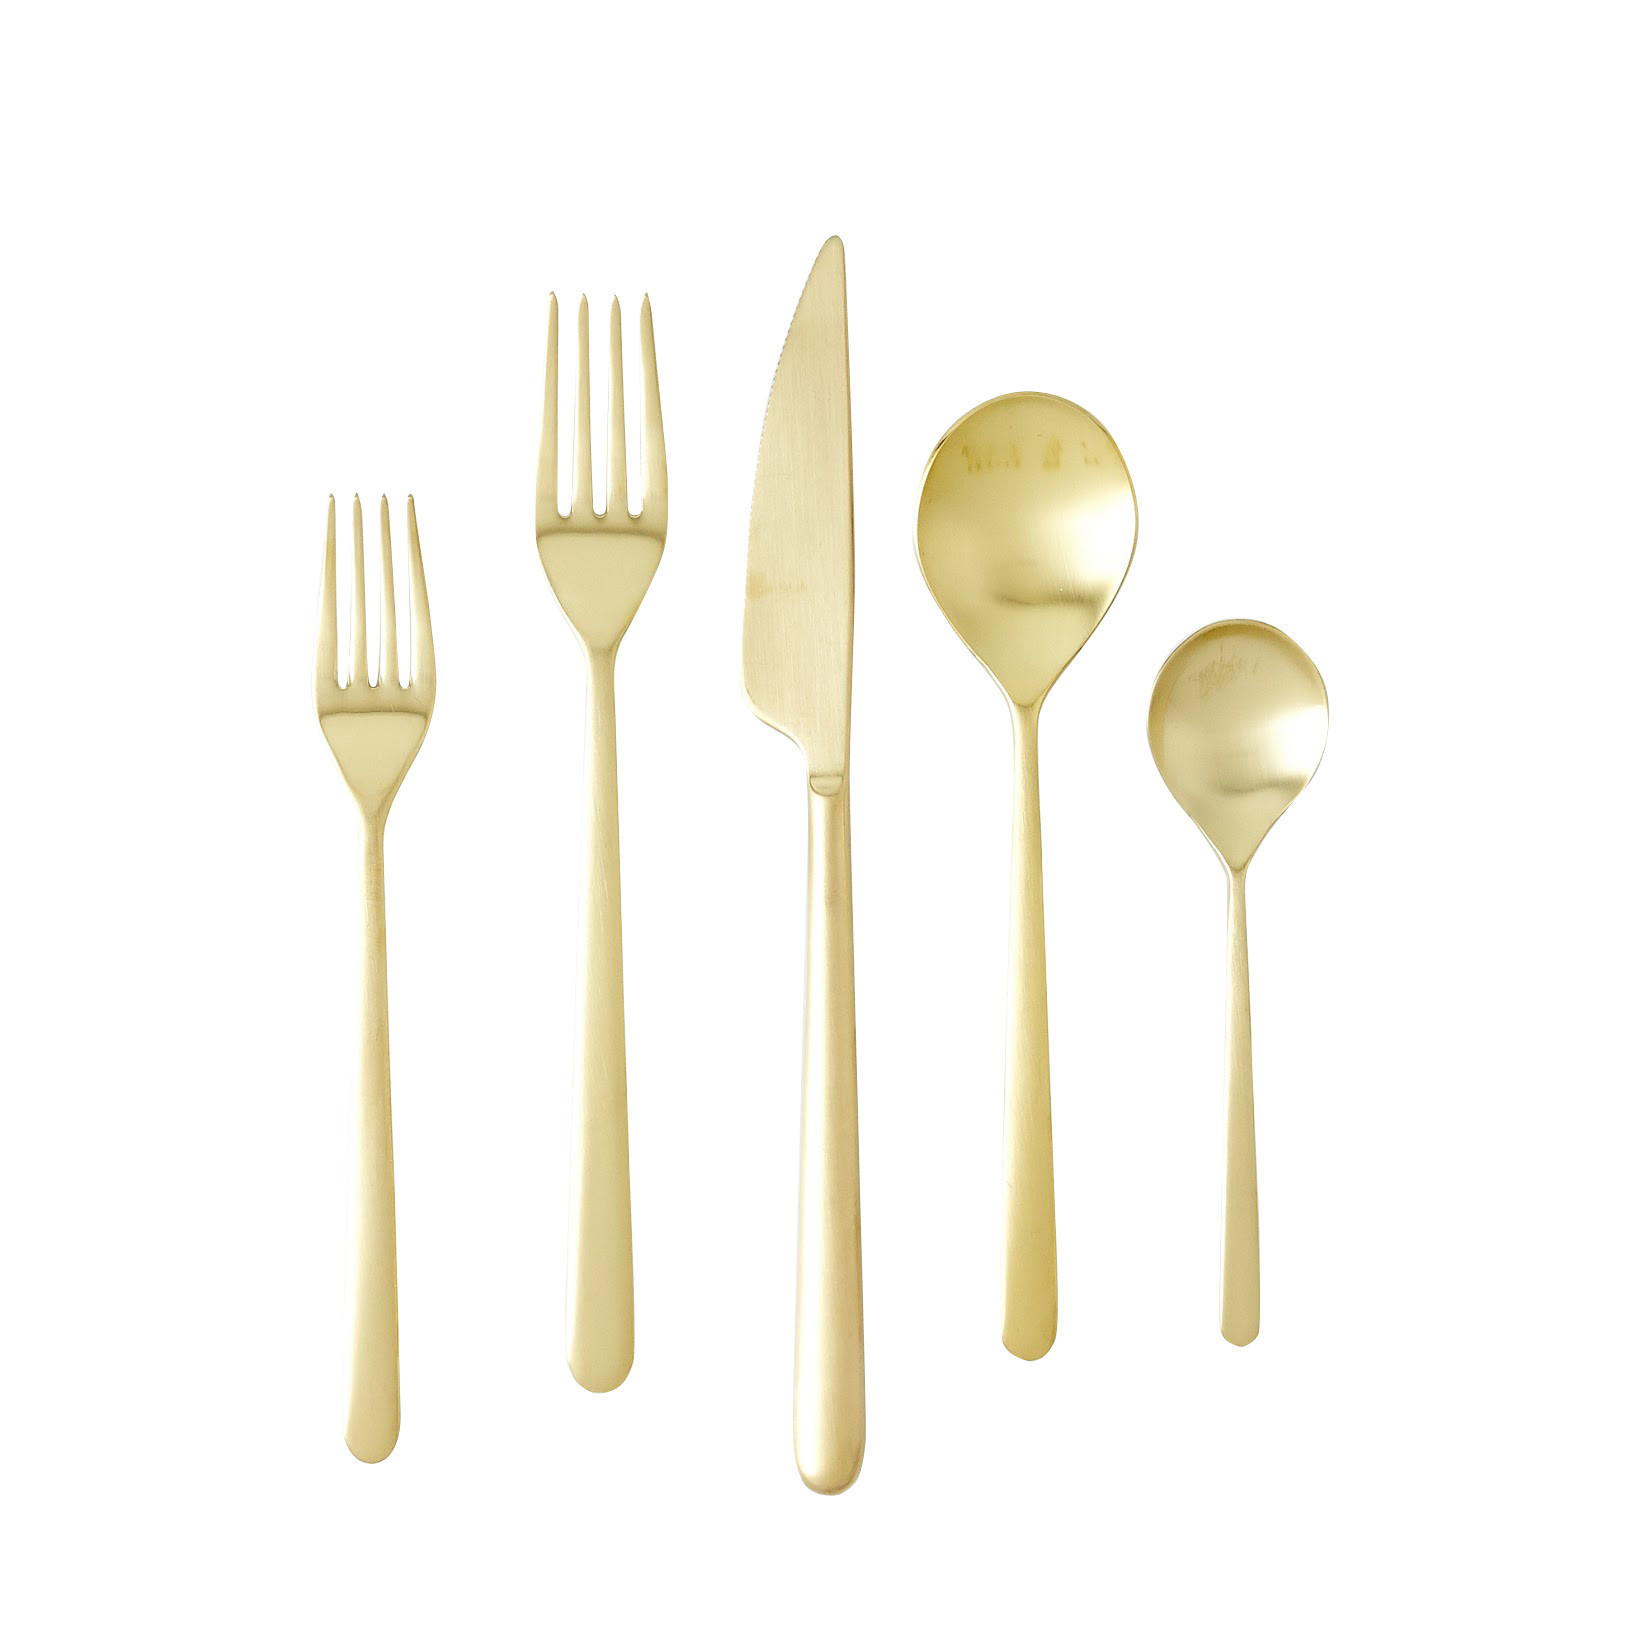 Incredible gold flatware for kitchen and dining sets ideas with gold flatware set